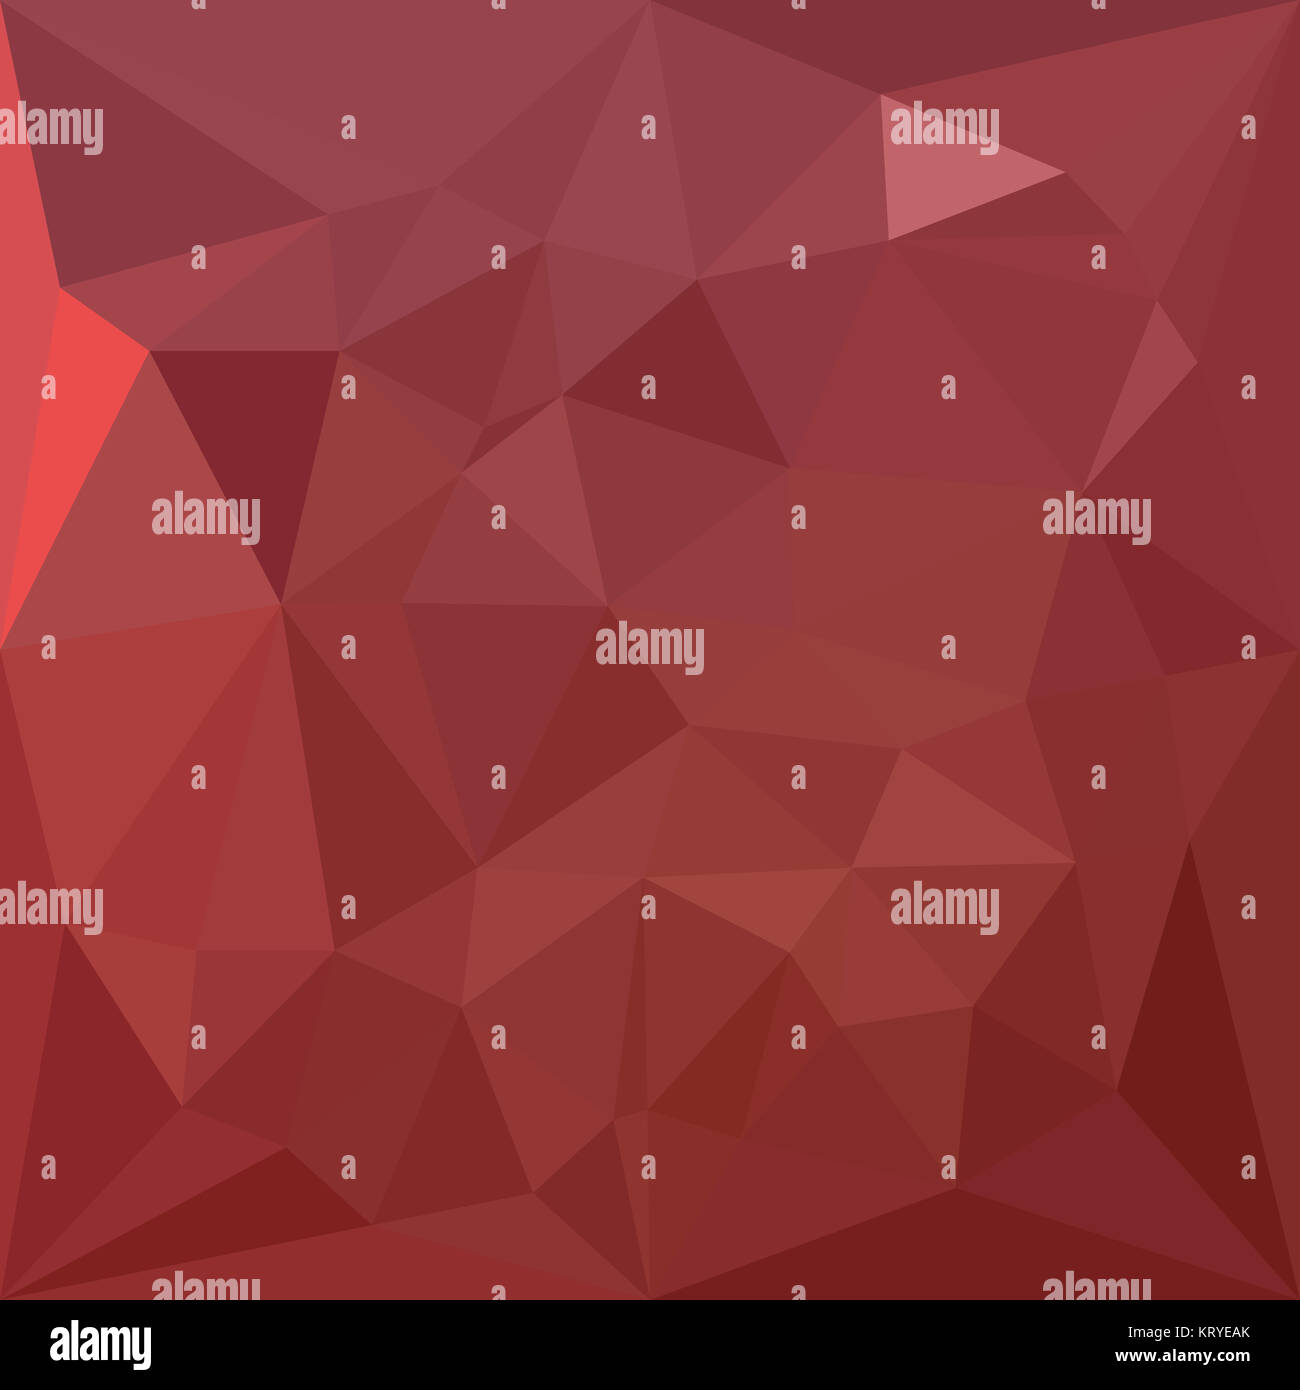 Amaranth Purple Abstract Low Polygon Background - Stock Image